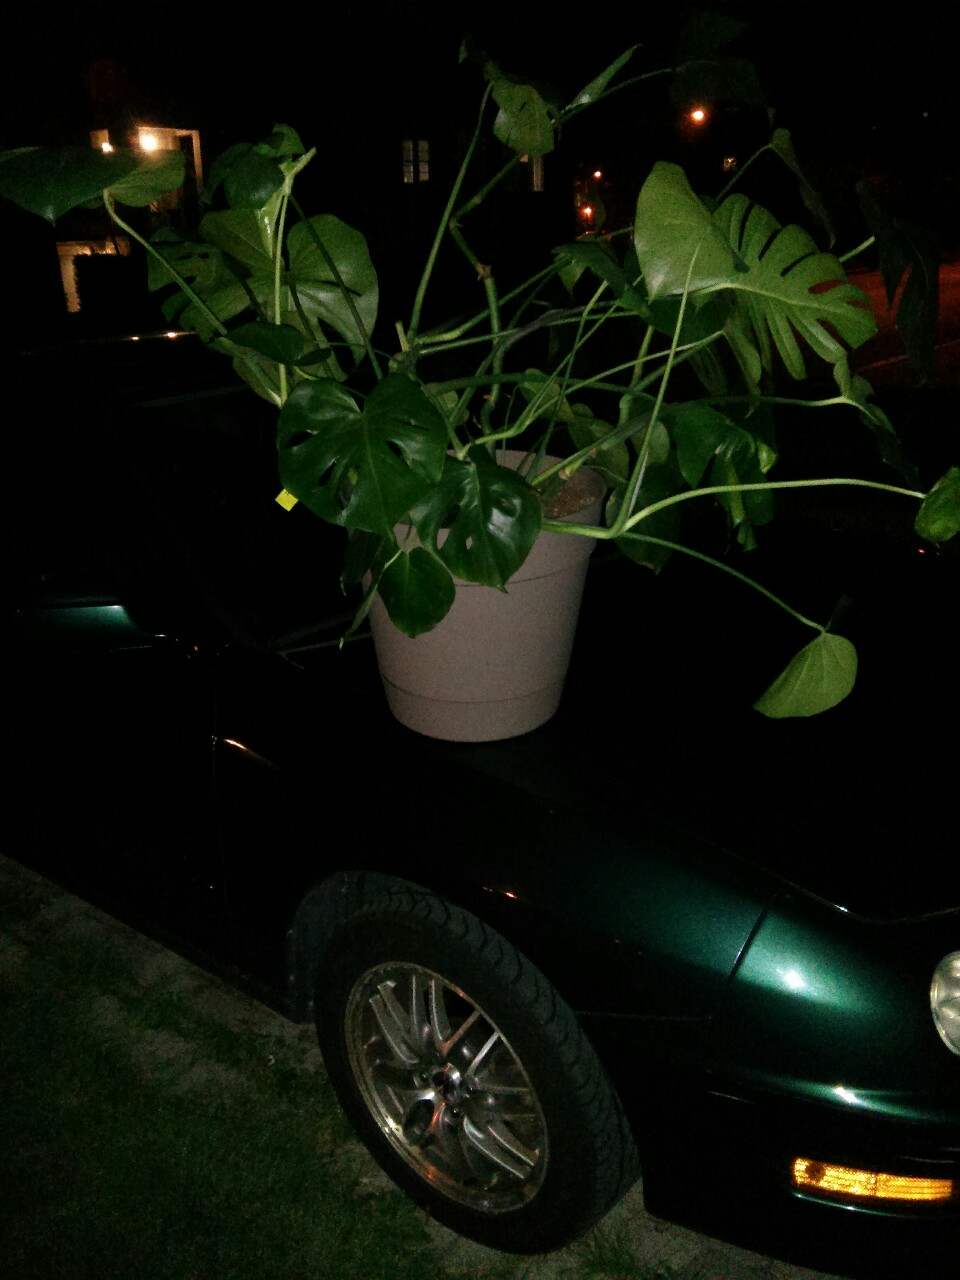 September 17, 2014 -  I responded to a classified ad for someone wanting to sell off this Monstera deliciosa because it was becoming too unruly for their small space. Asking price: $10